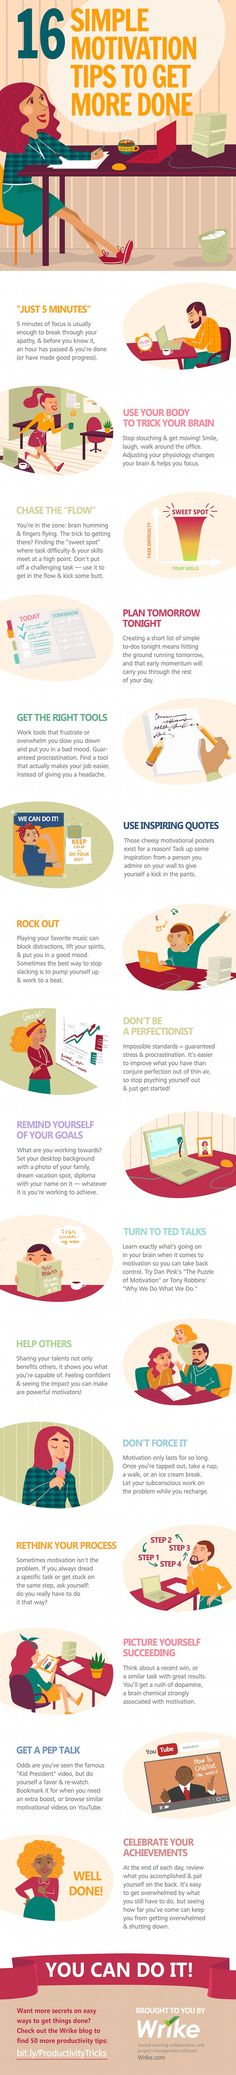 16 Simple Motivation Tips to Get More Done Infographic - http://elearninginfographics.com/16-simple-motivation-tips-infographic/